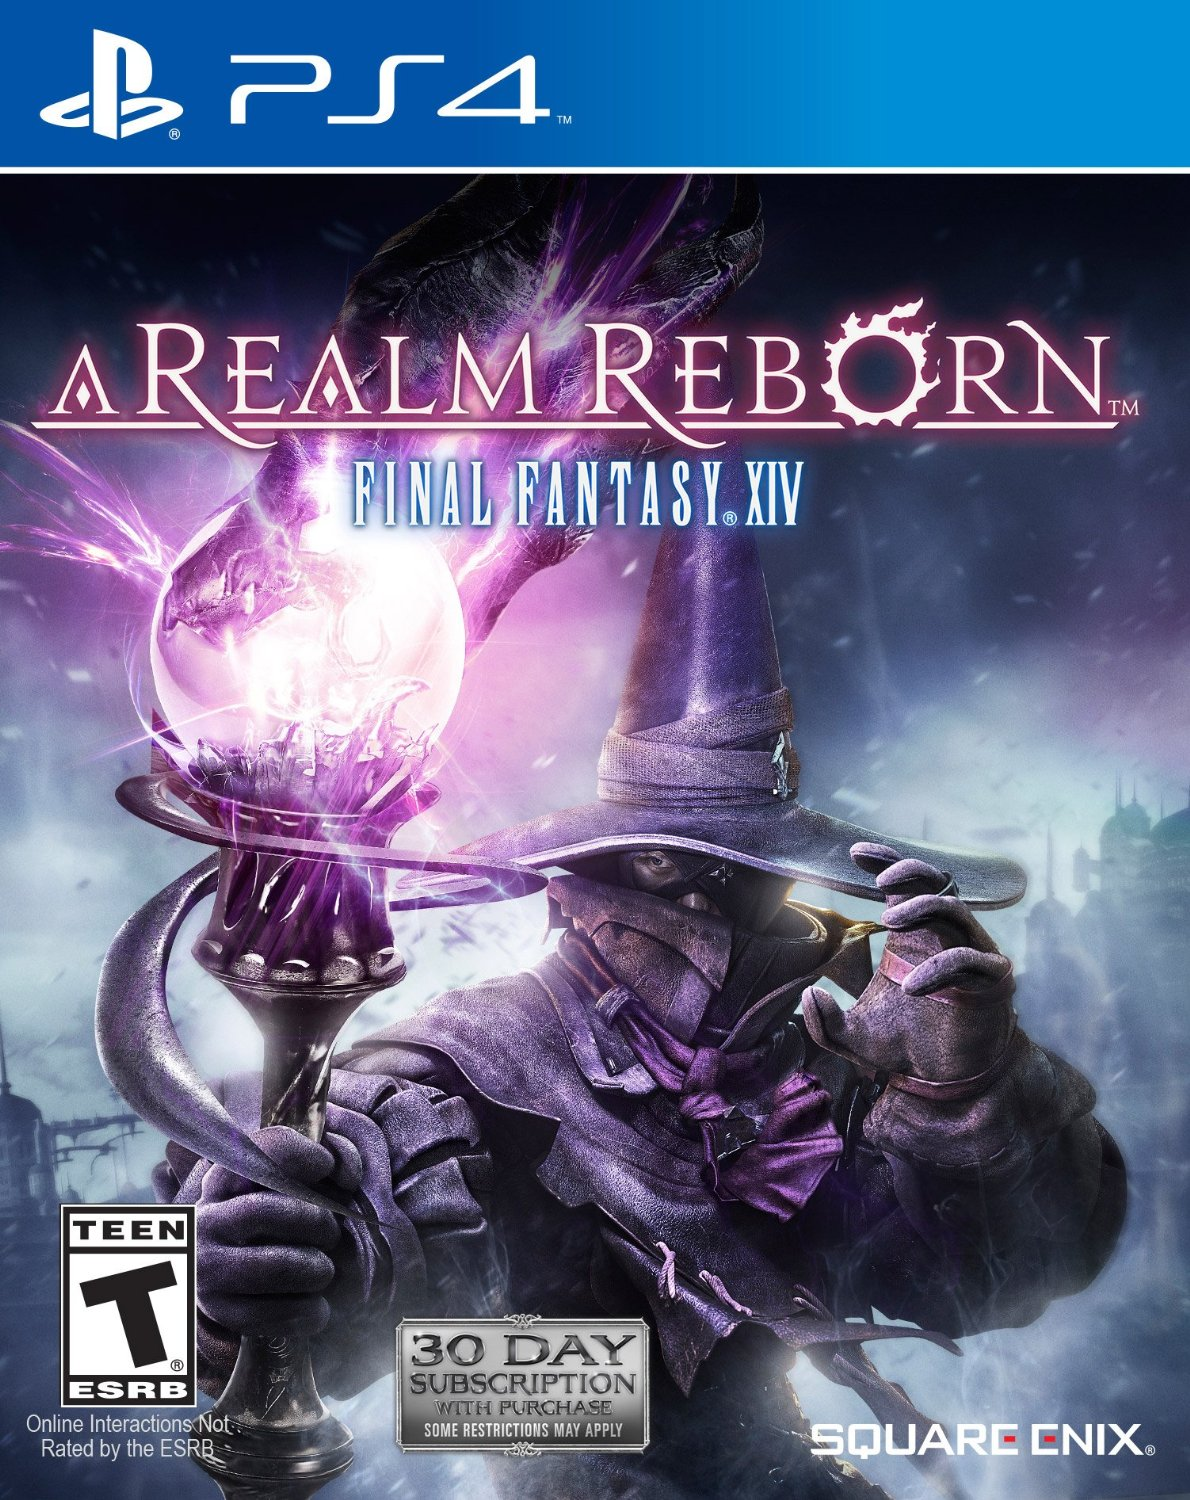 Final Fantasy Xiv Online A Realm Reborn What Are The Best Ps4 Game Steep  Reg 3 Playstation 4 Games Slant